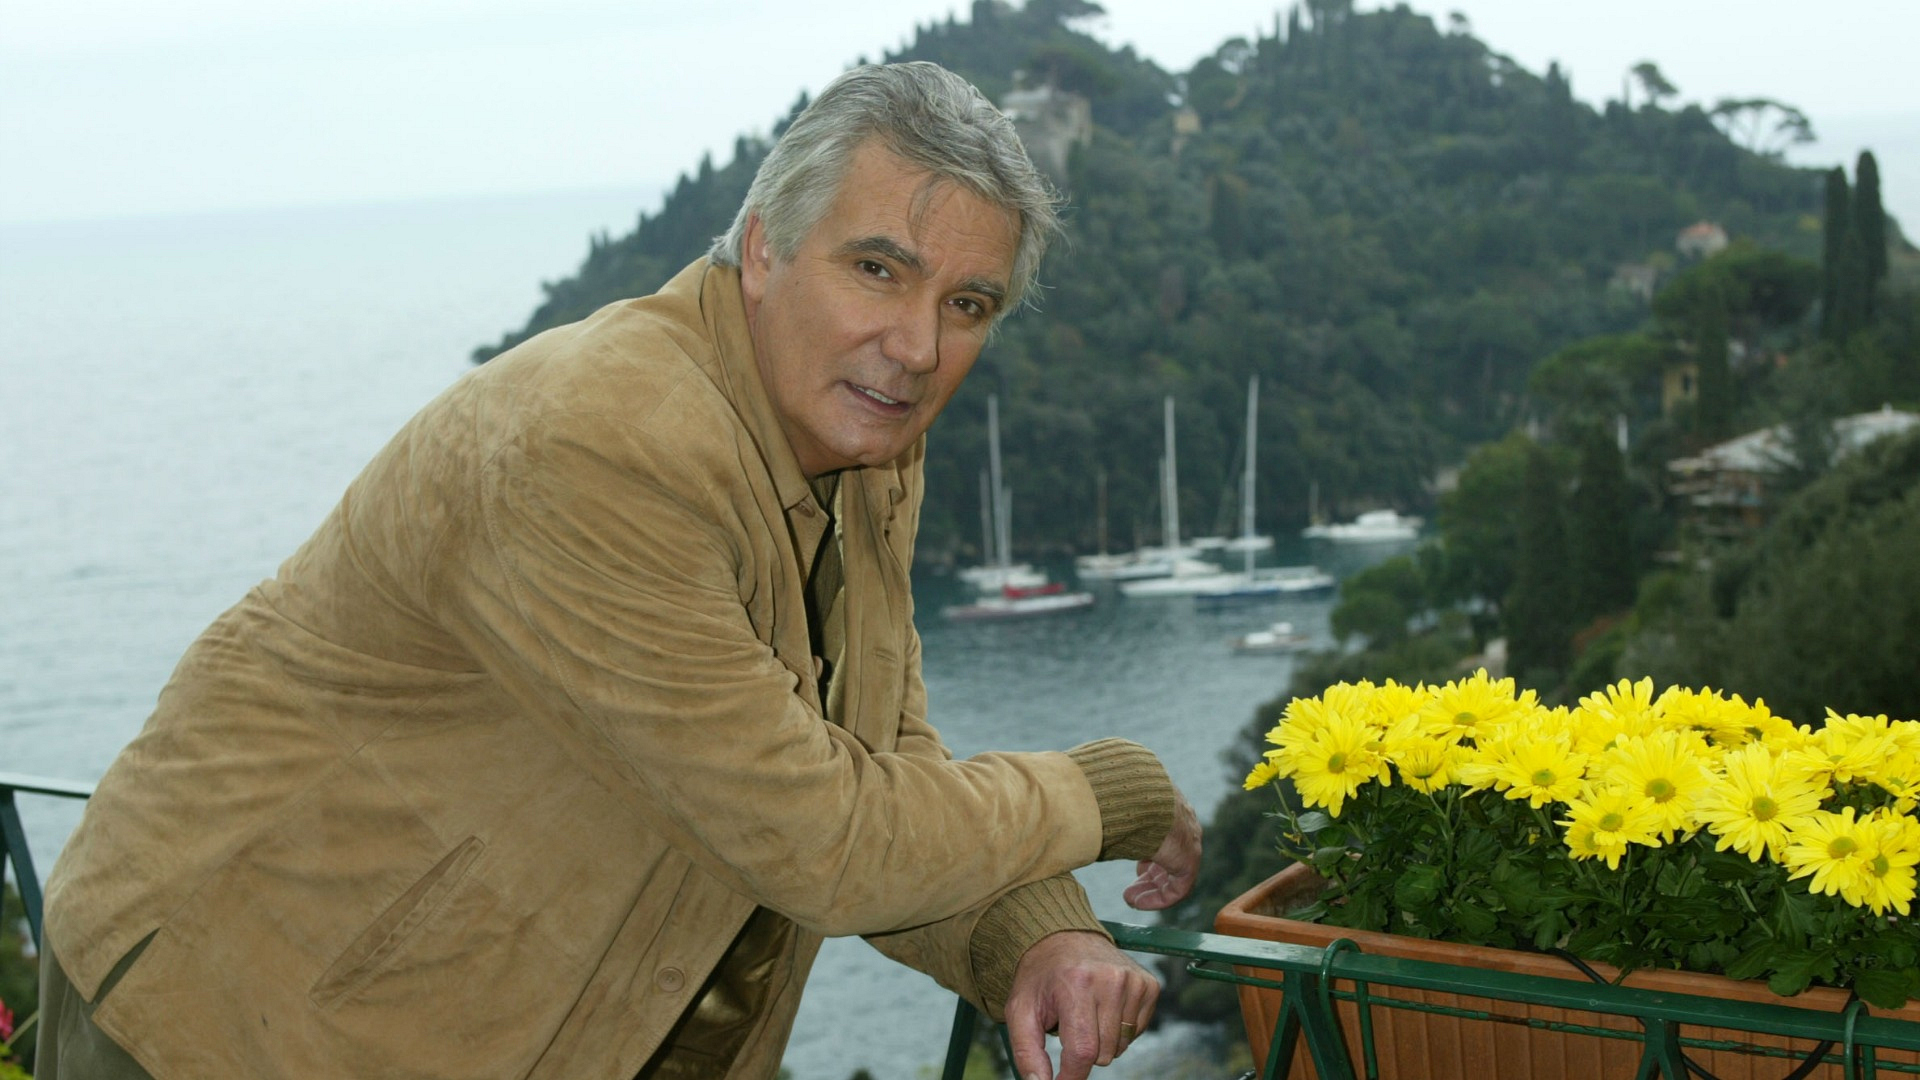 John McCook stopped to smell the flowers in Portofino, Italy.